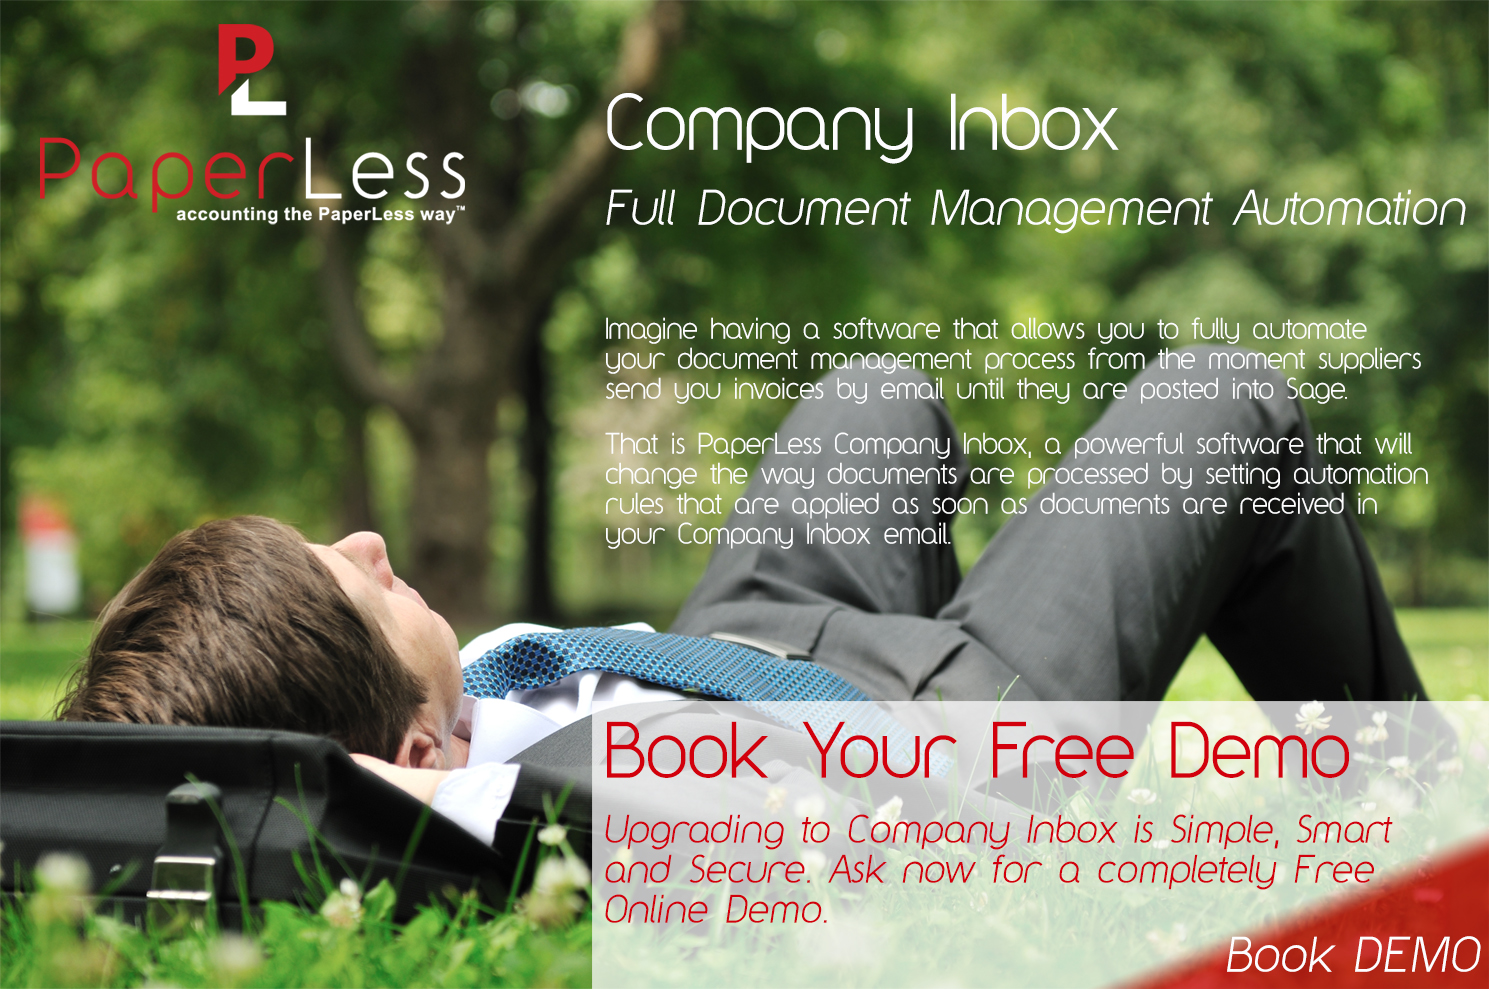 Click here to find out more about PaperLess Full Document Management Automation